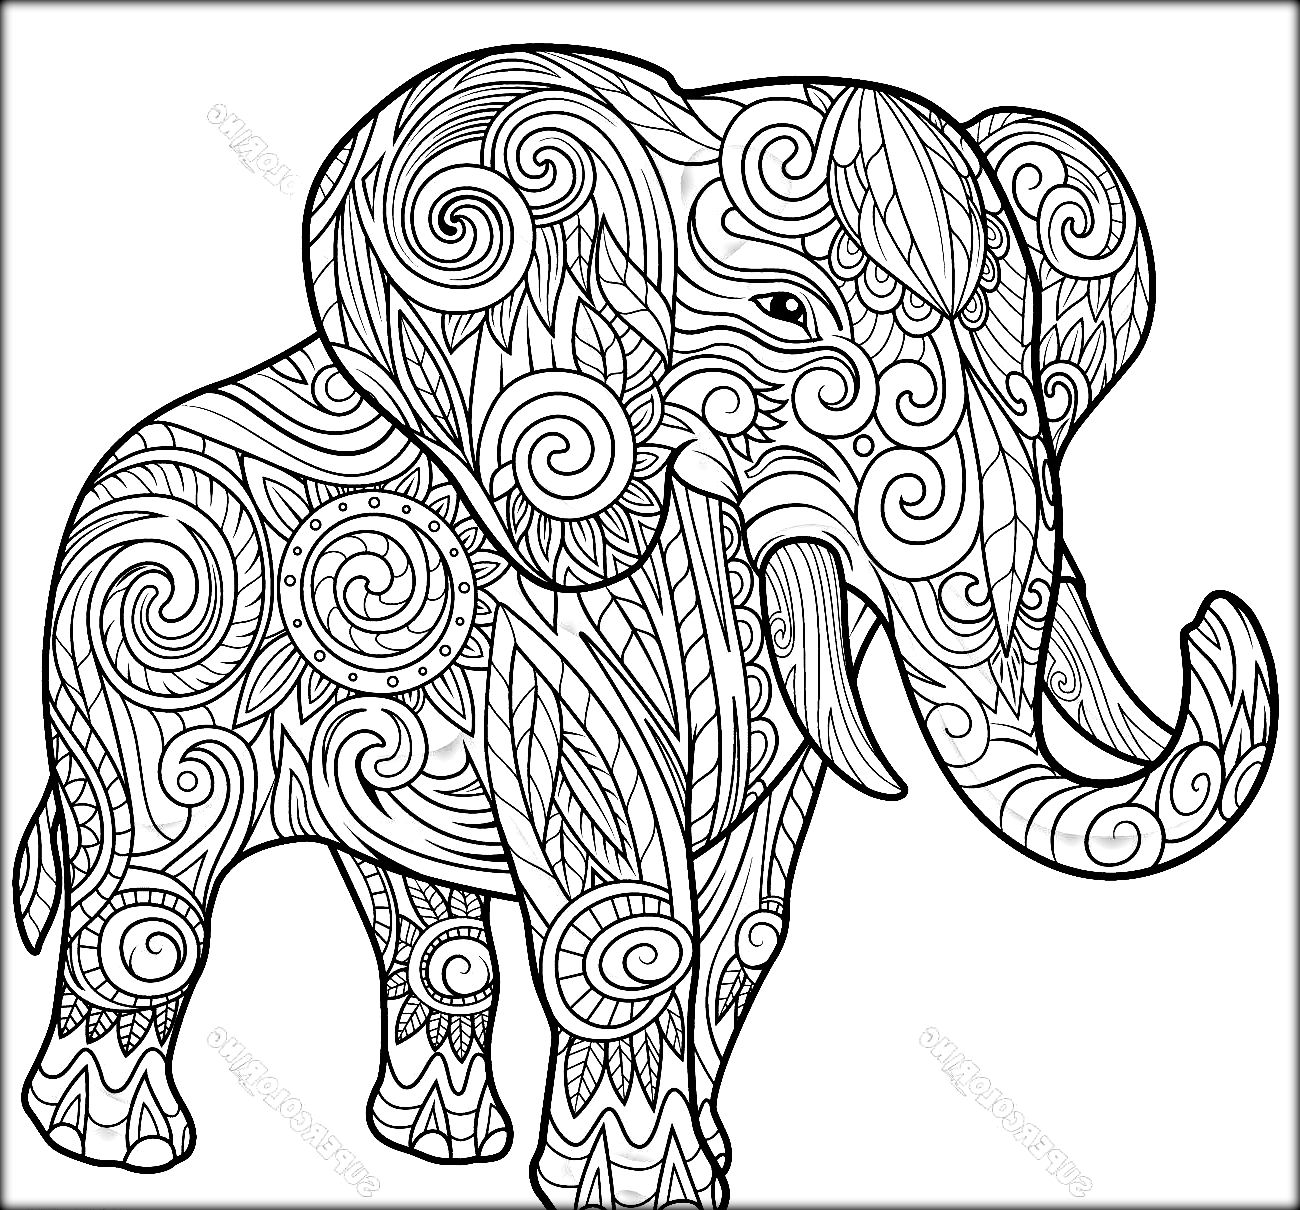 Mandala Coloring Pages For Adults At Getcolorings